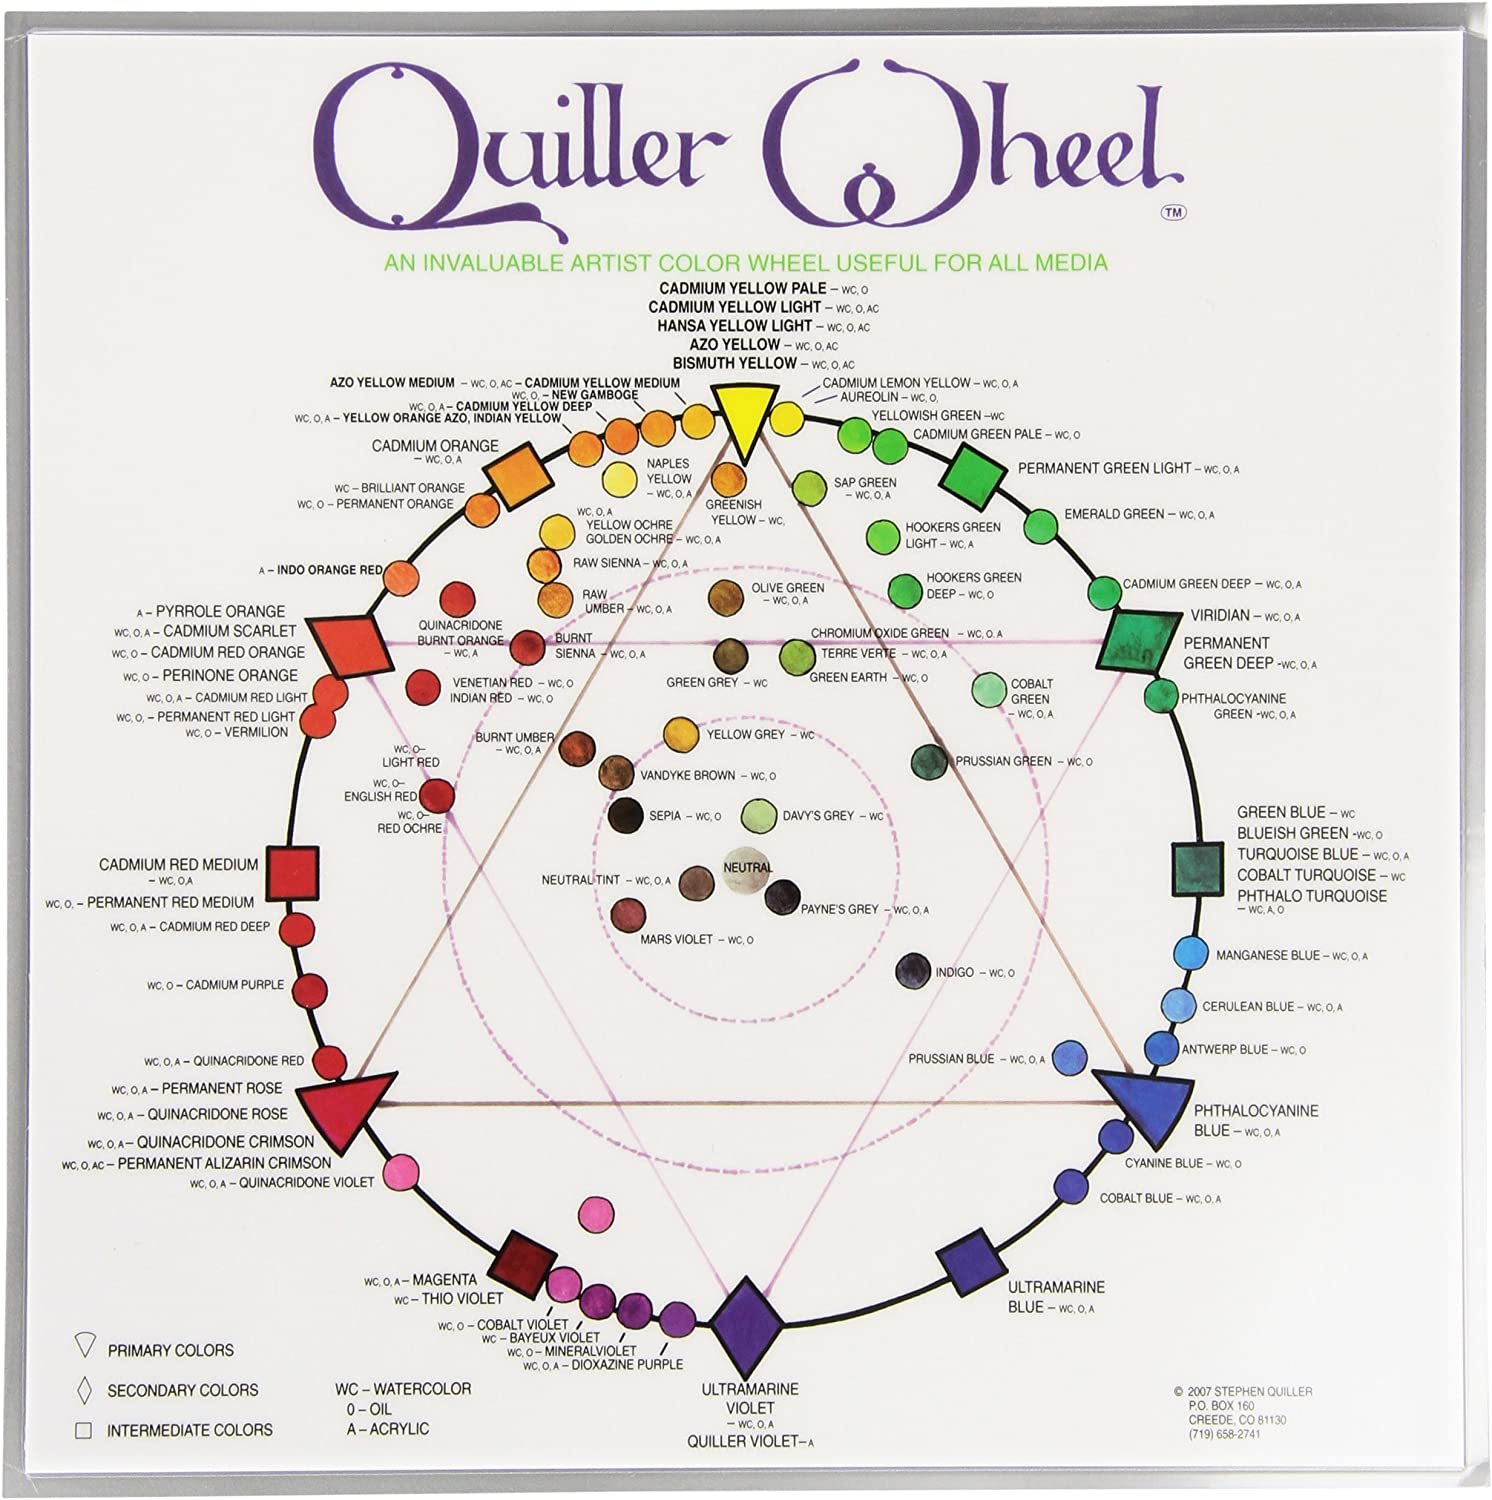 Jack Richeson JACK-499987 Quiller Color Wheel for All Media by Stephen Quiller, 8.5 by 8.5-Inch